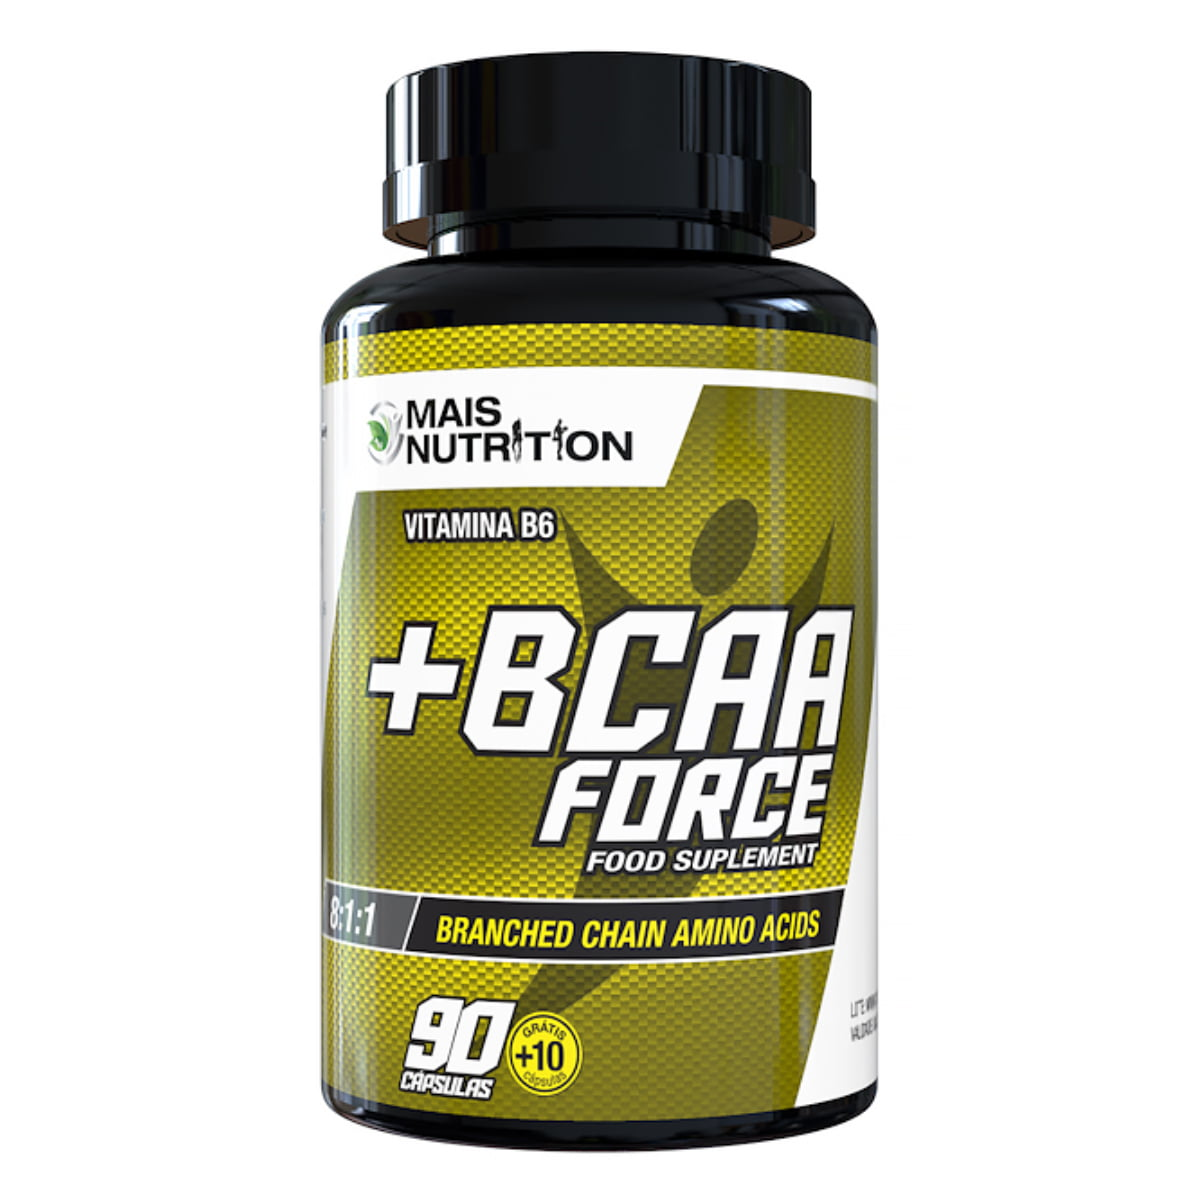 13 BCAA Force 100cp + 5 Whey Blend 2kg Refil Mais Nutrition